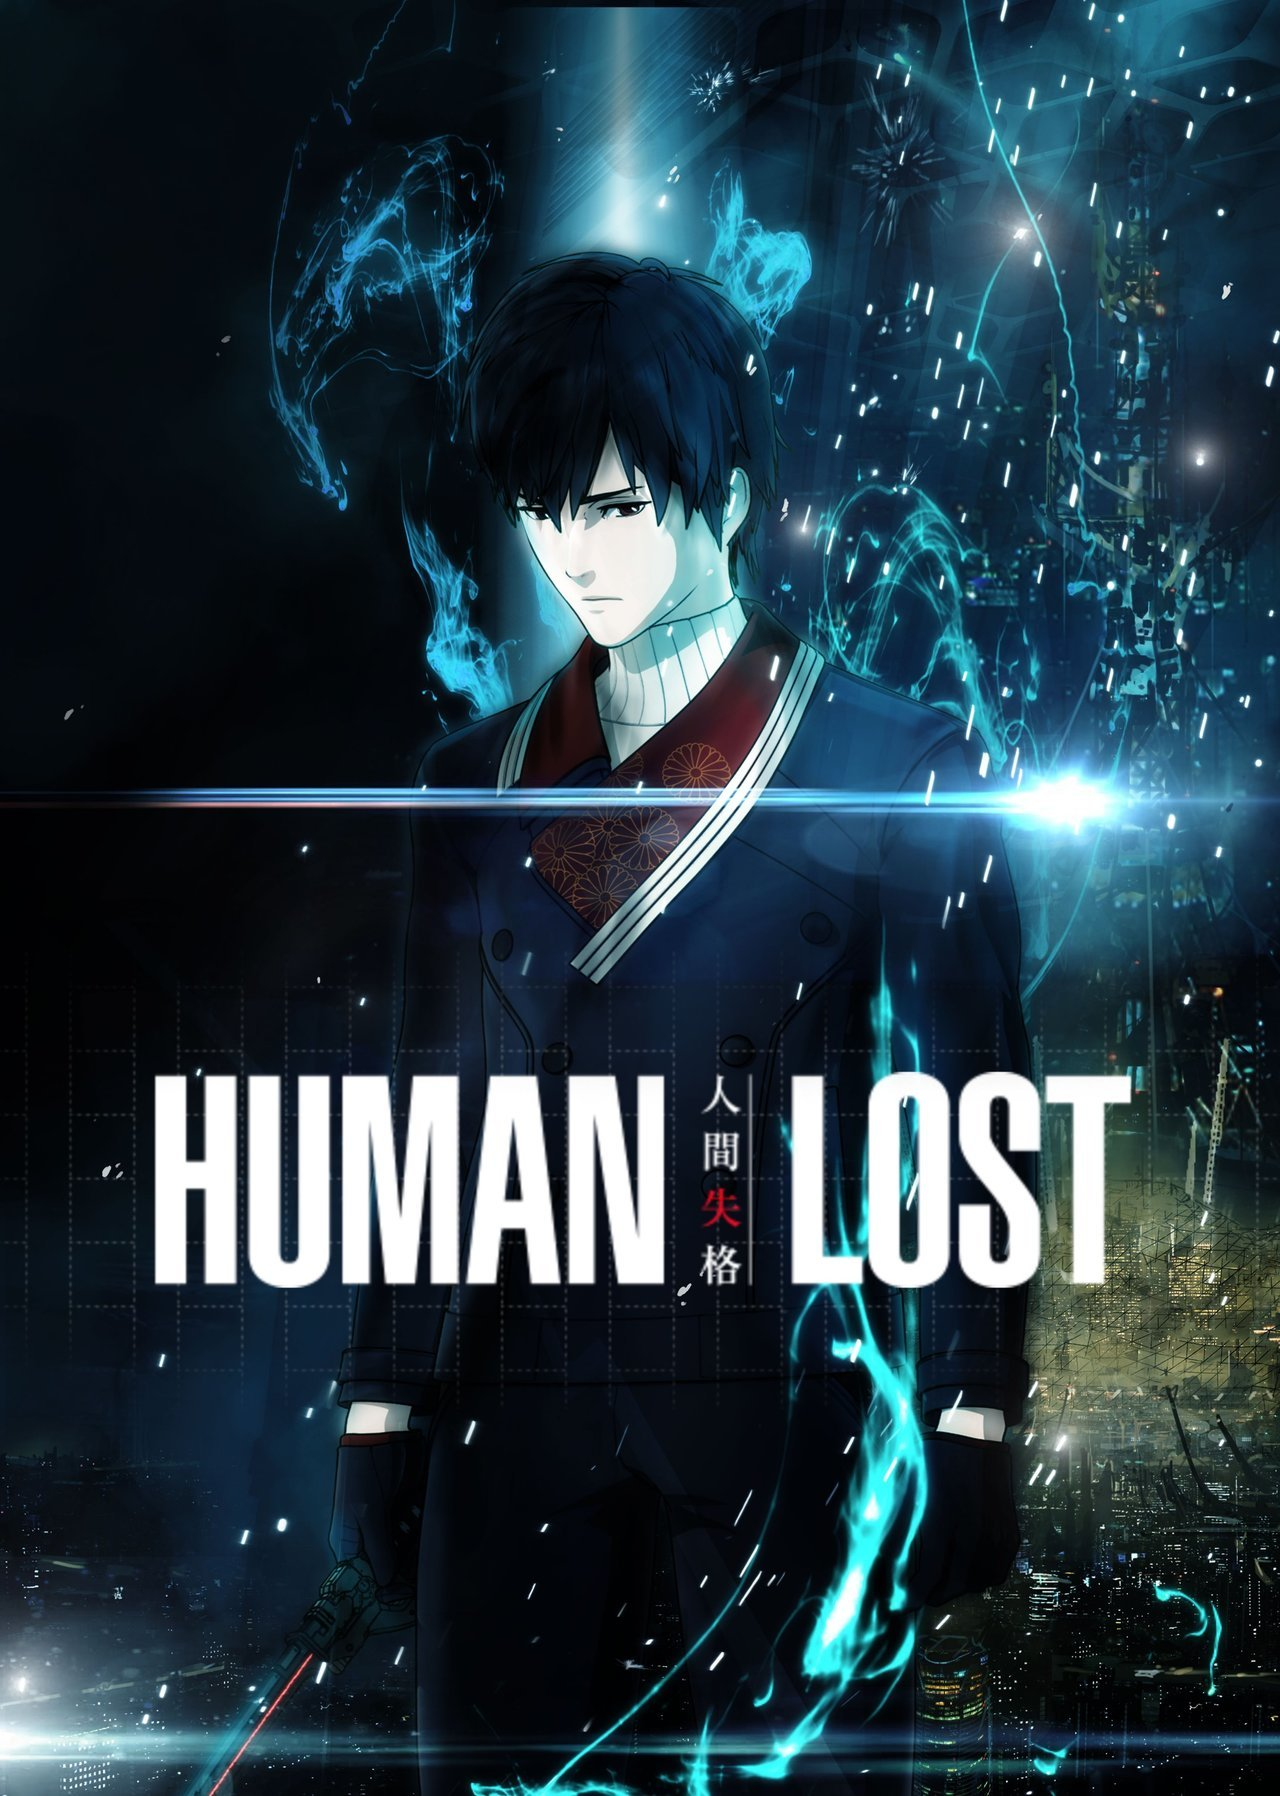 Human Lost Affiche